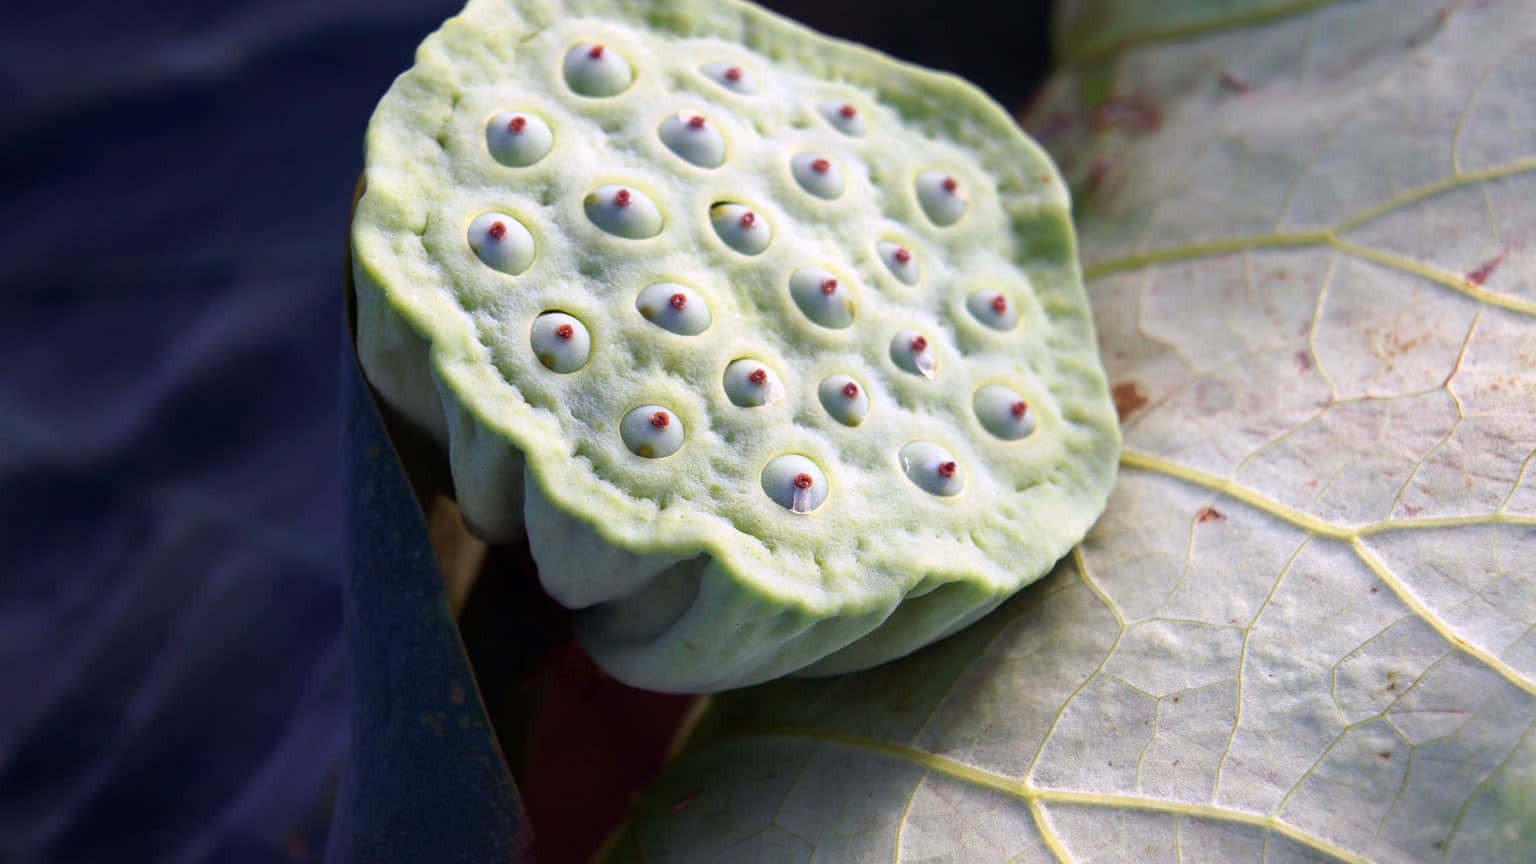 The health roles of lotus root exposed